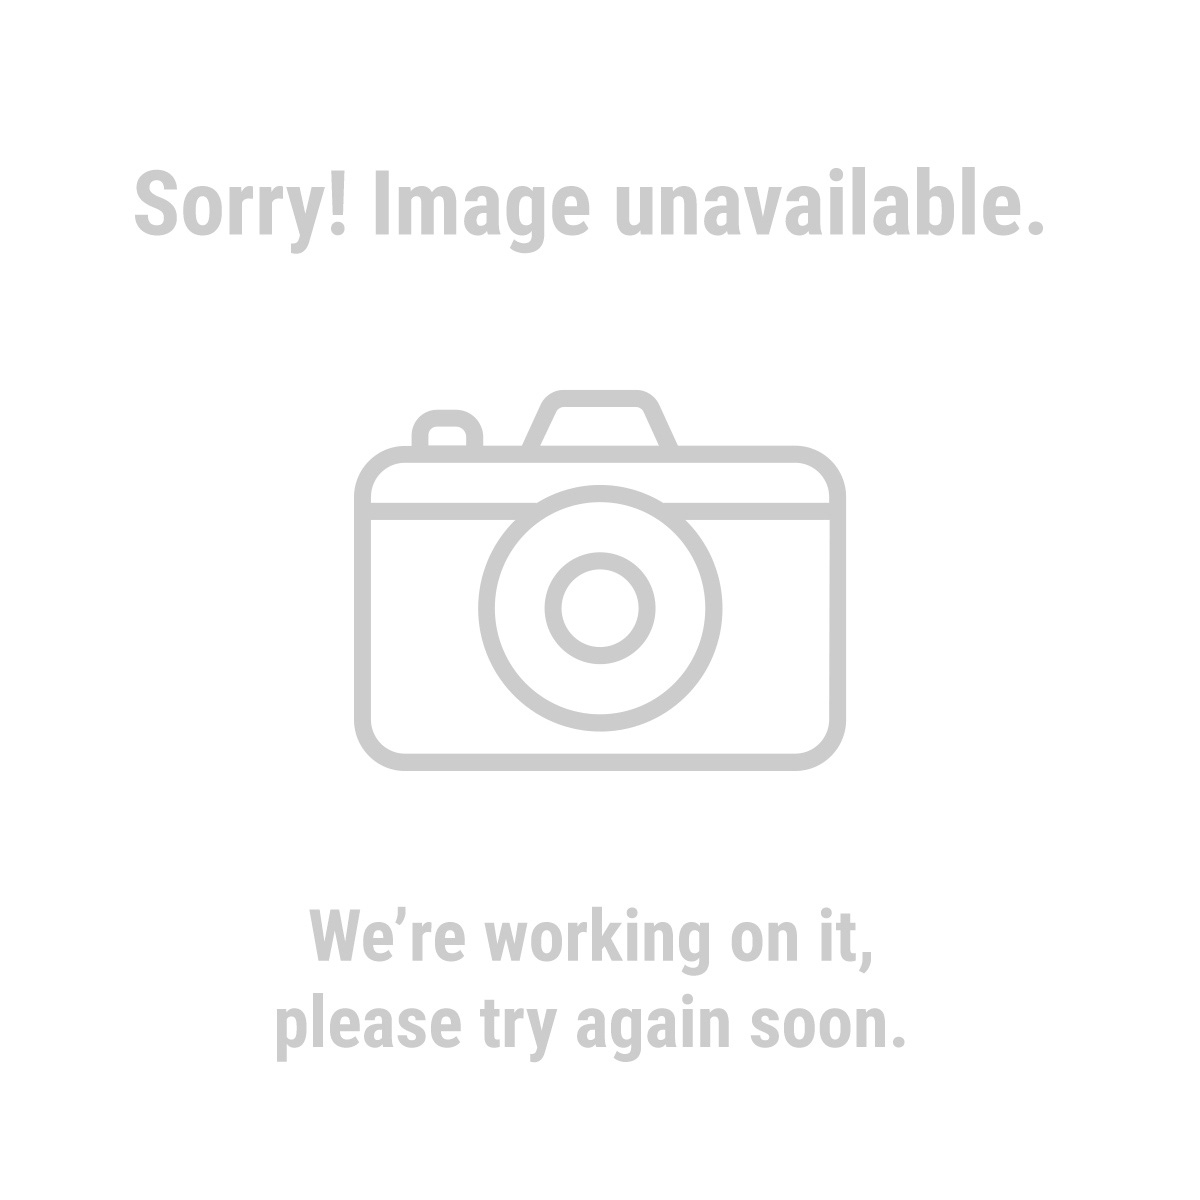 "H-M 66363 3"" x 7/8"" Rubber Rigid Caster"